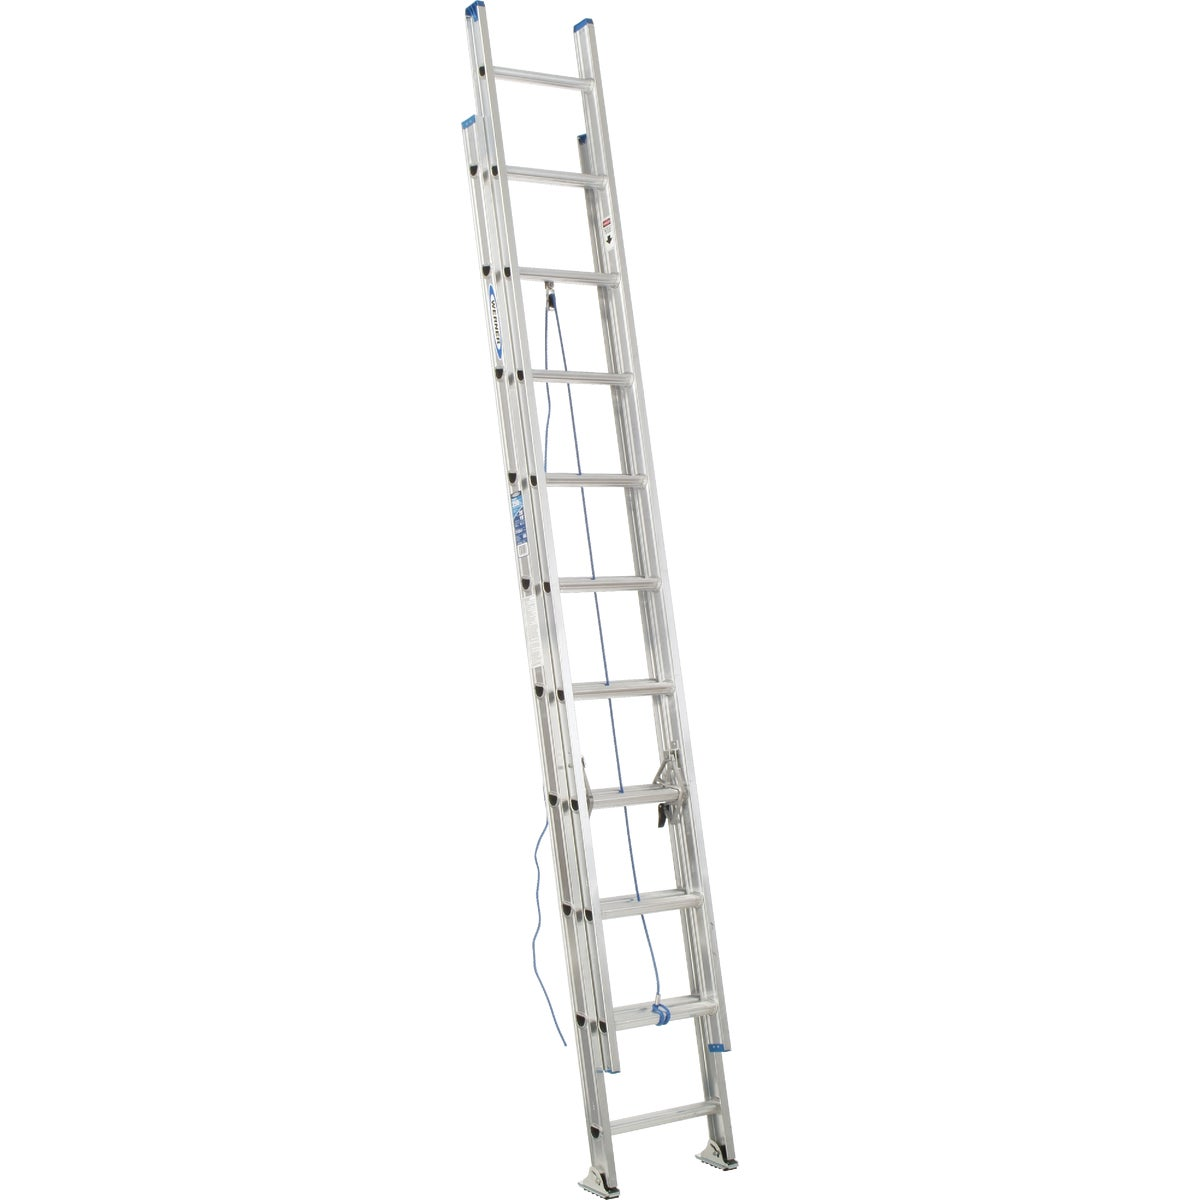 T-1 20' ALUM EXT LADDER - D1320-2 by Werner Ladder